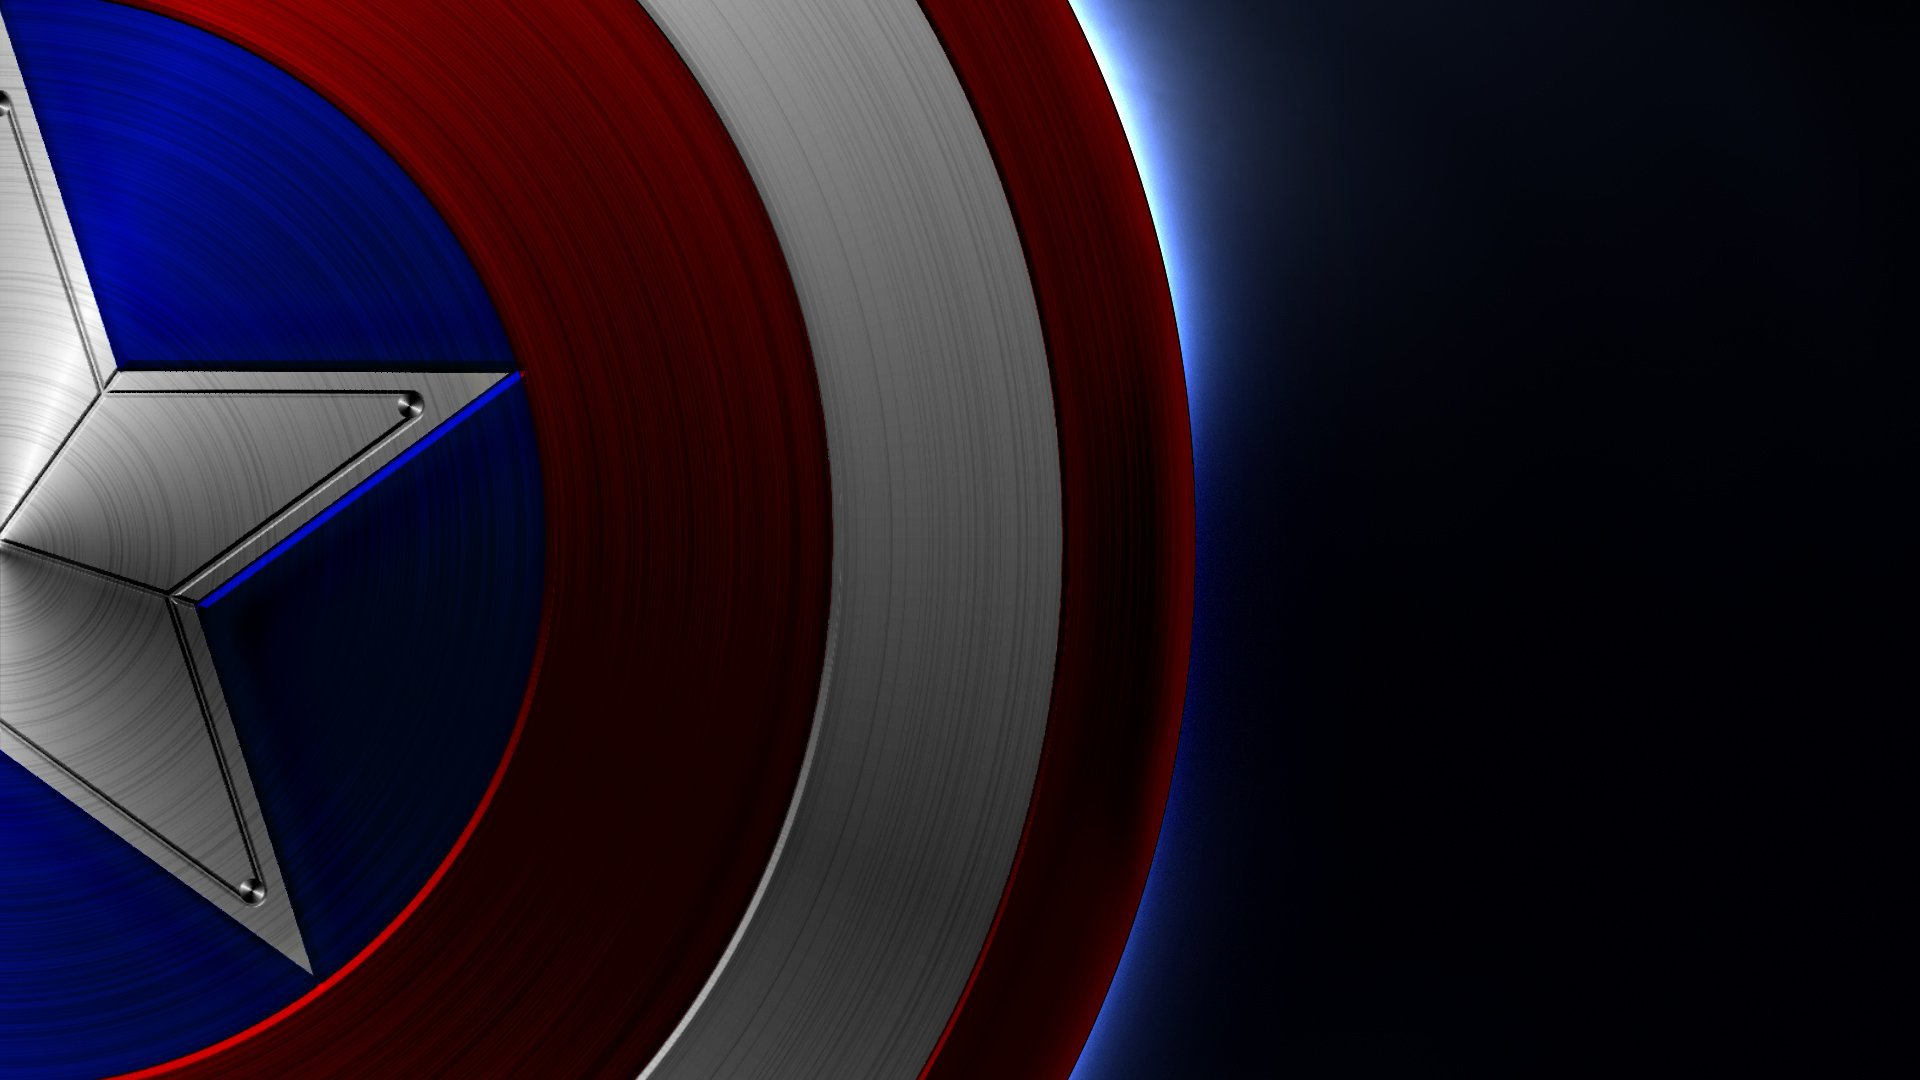 captain america wallpapers images photos pictures backgrounds